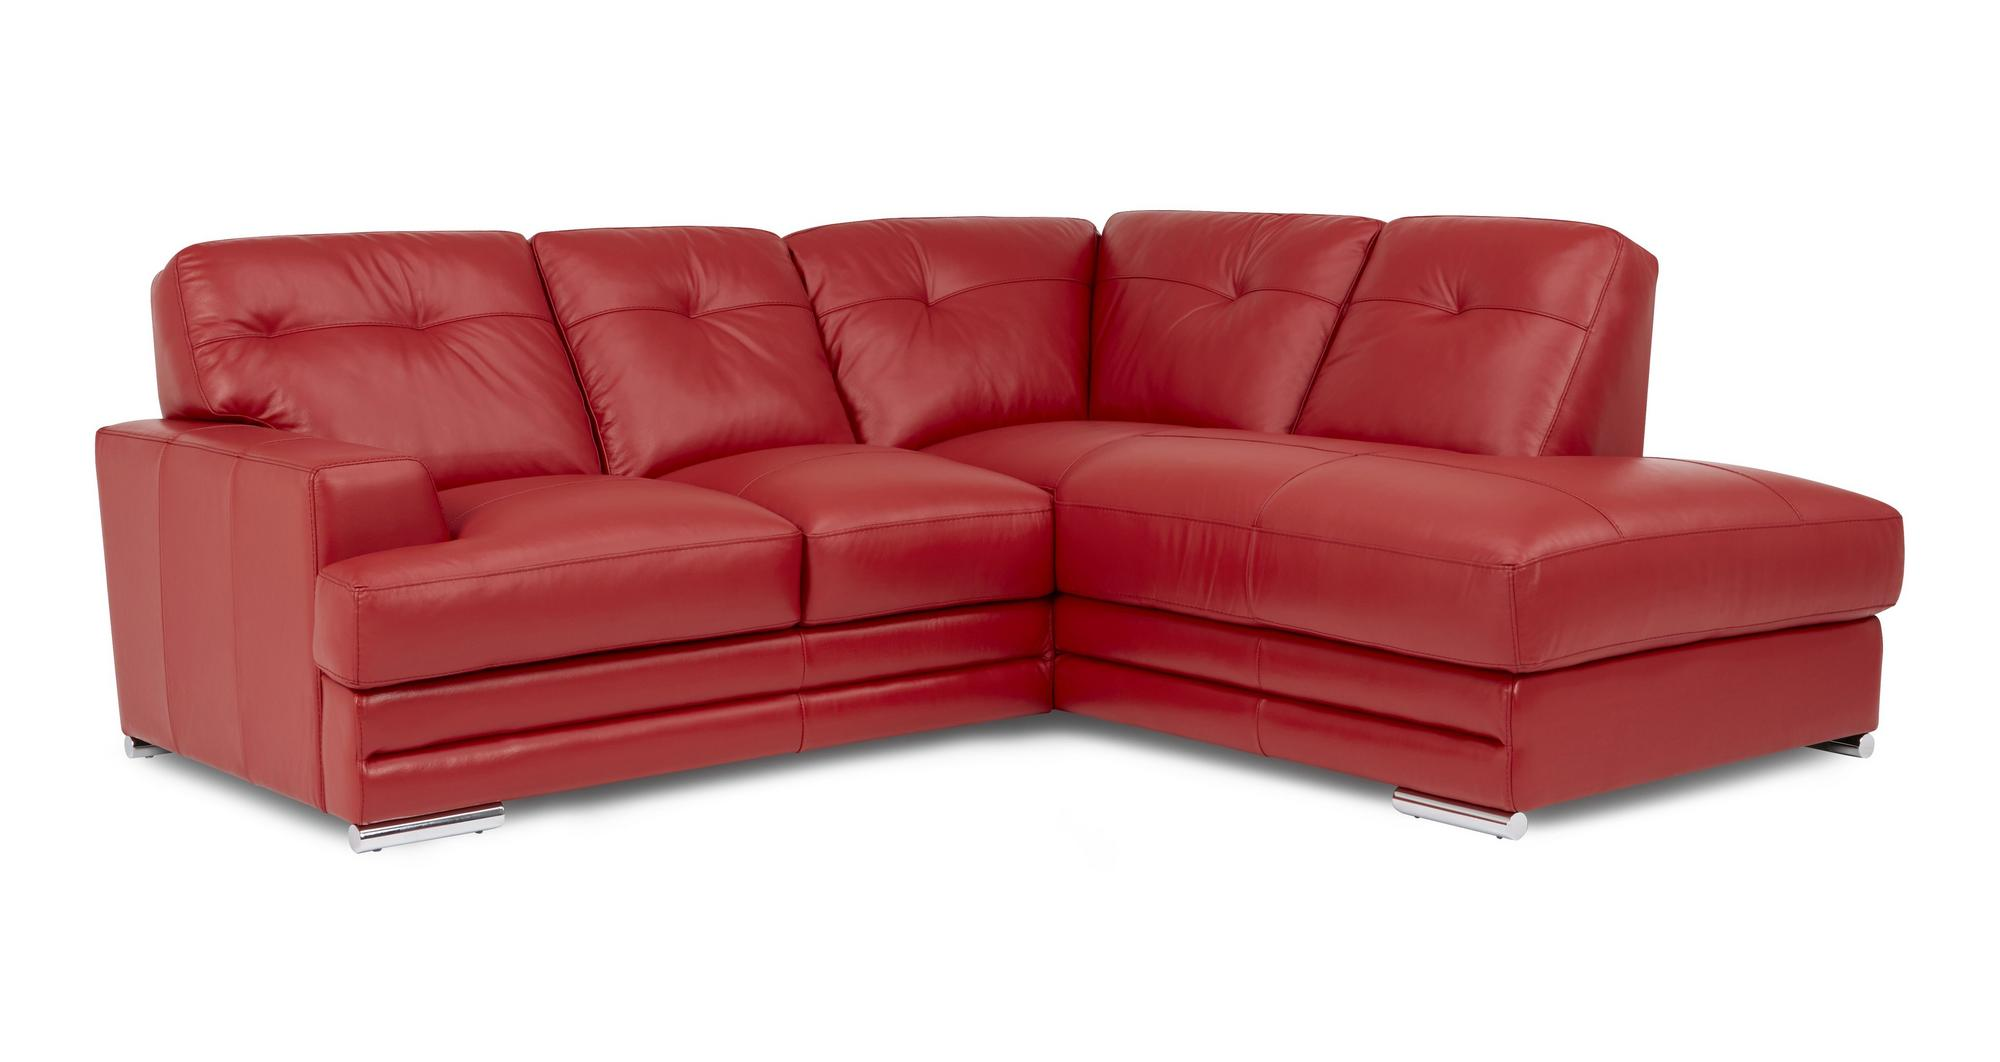 Dfs Quantum Red Leather Corner Sofa Set 3 Piece Clearance Bundle Ebay